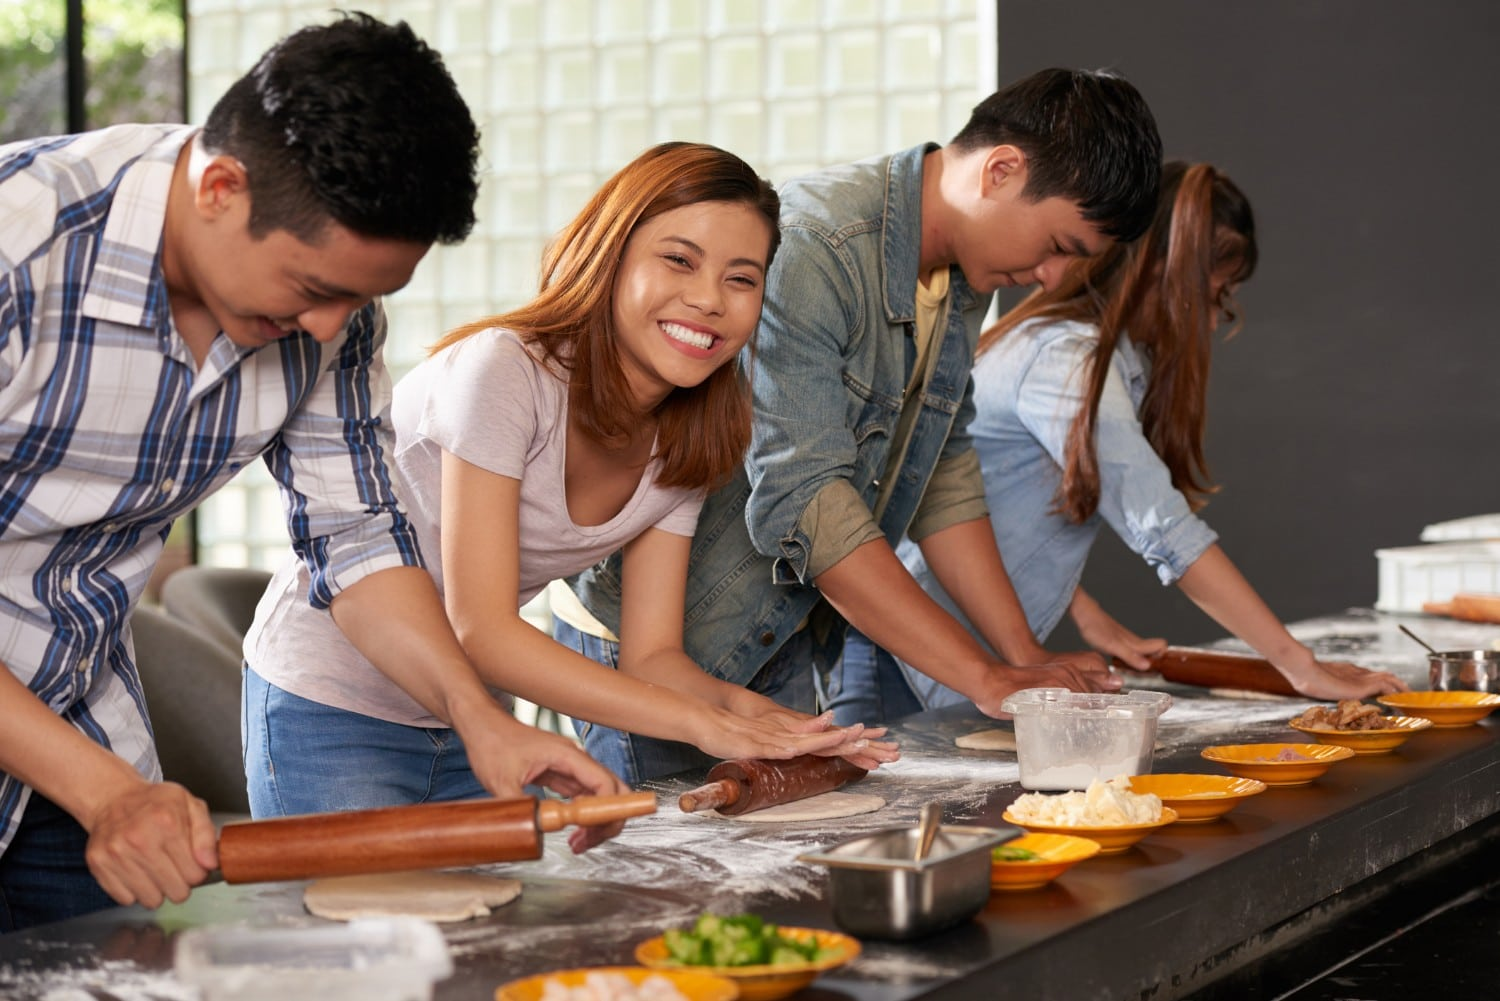 Four people cooking together at a cooking school